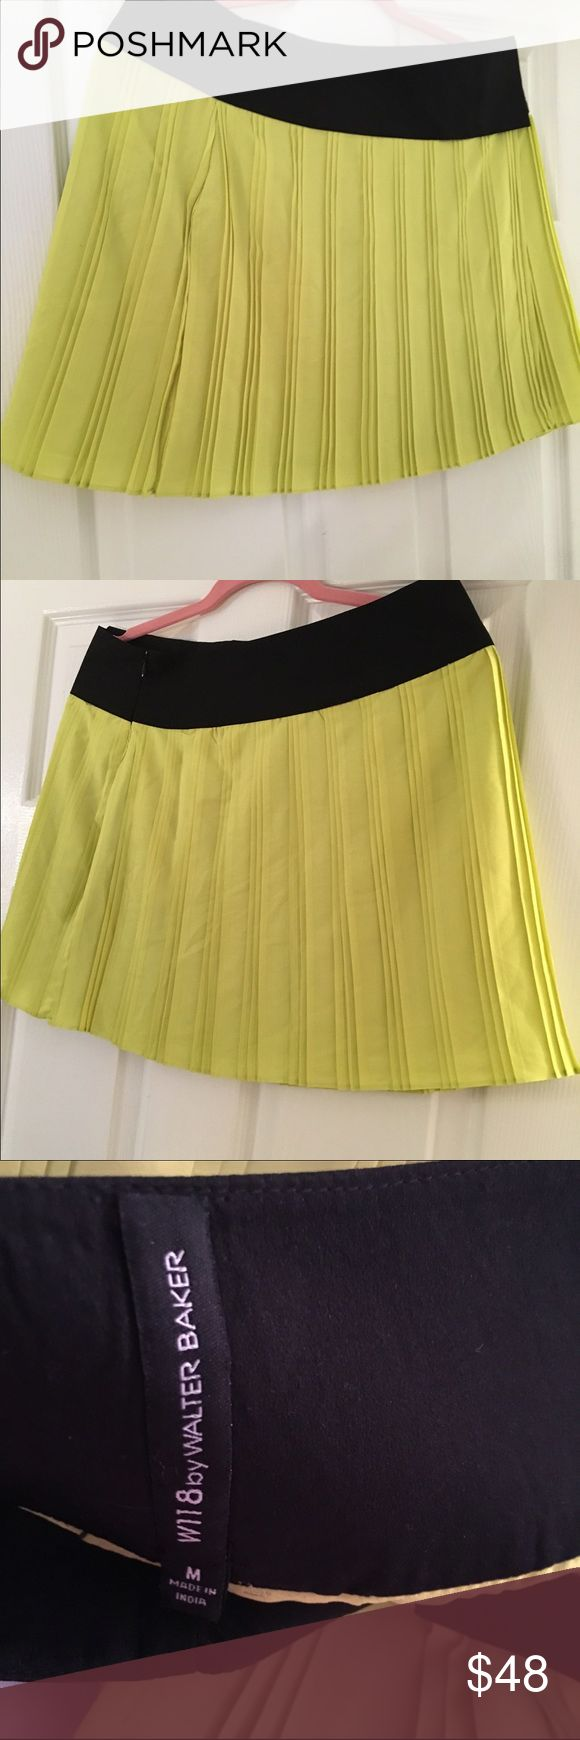 Walter baker w 118 lime green pleated skirt Walter baker by  w 118  lime green pleated skirt never worn but no tickets W118 by Walter Baker Skirts Mini